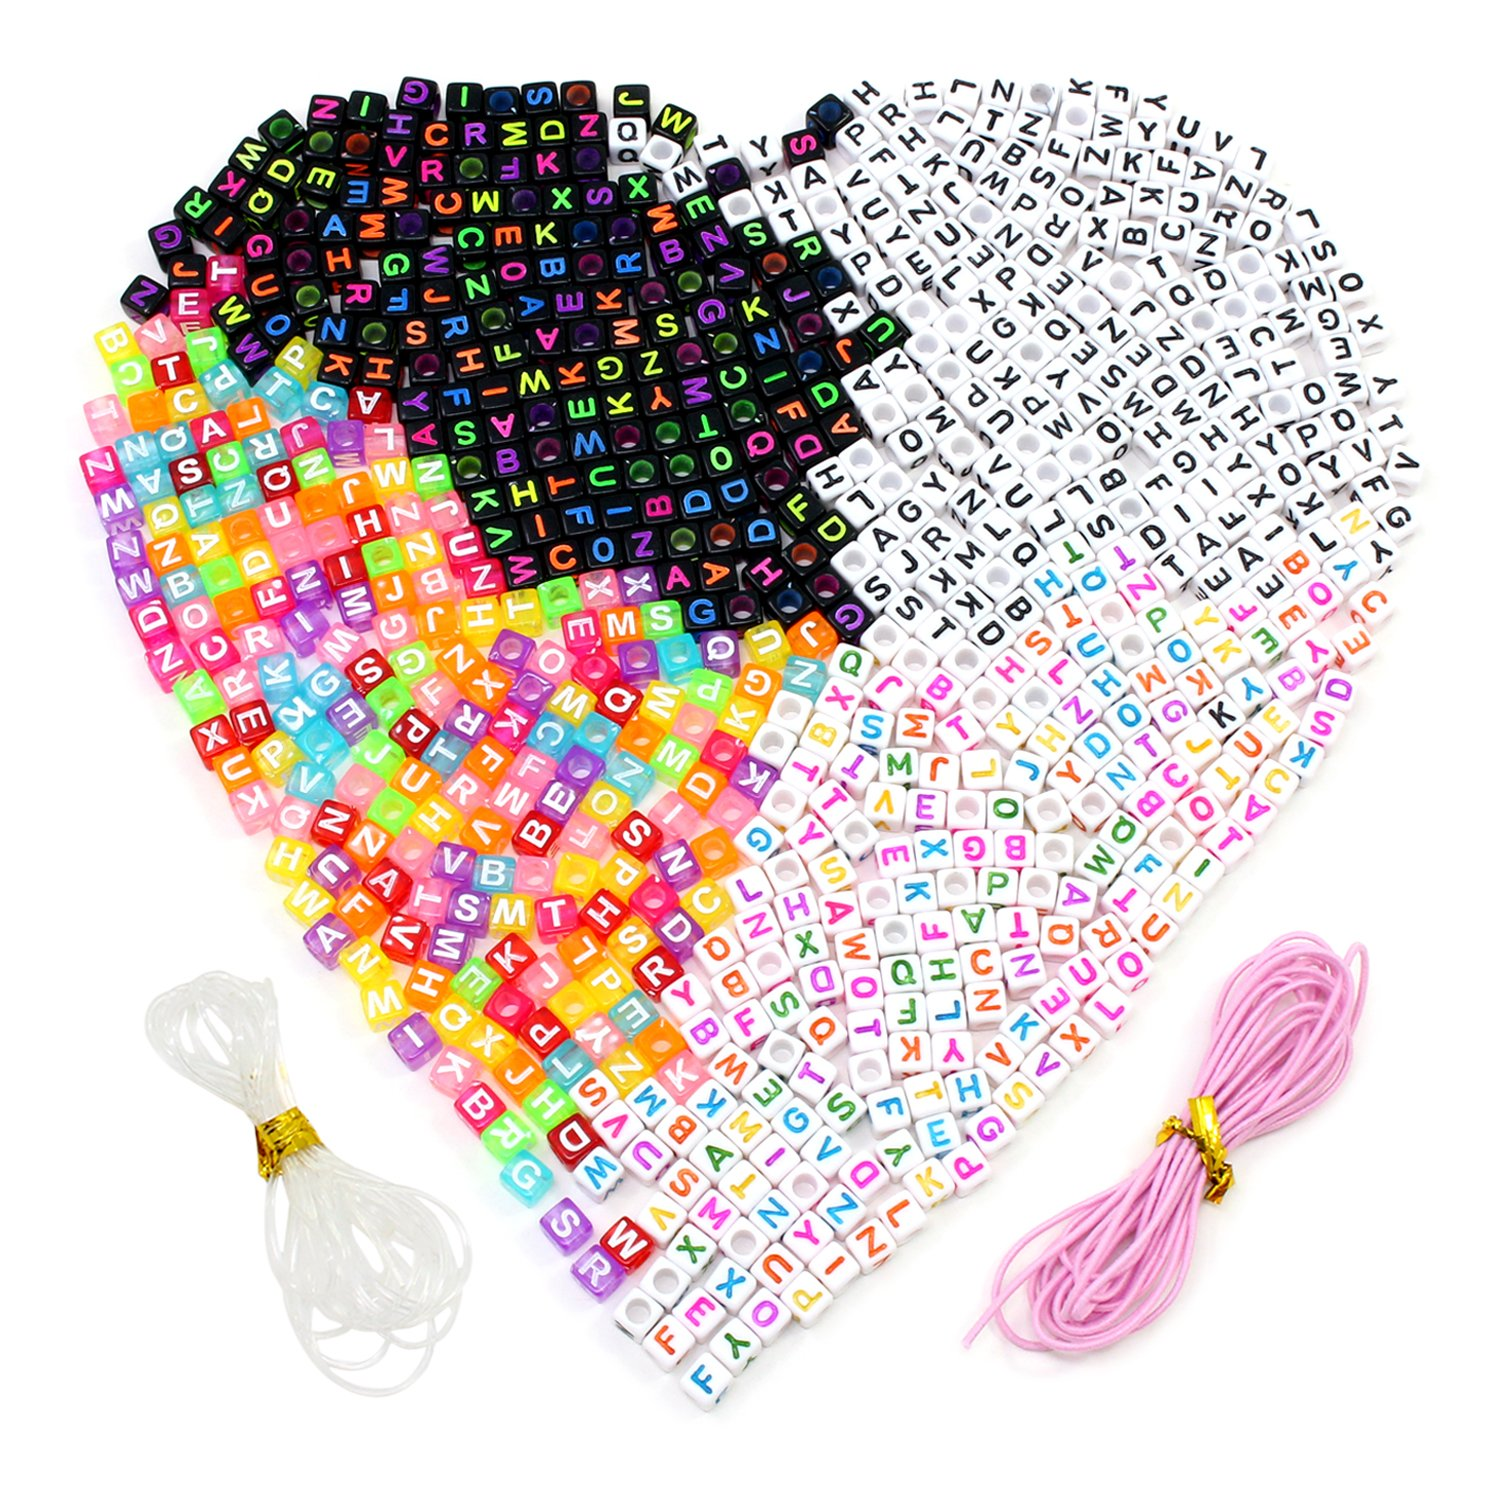 ESUMIC Colorful Acrylic Plastic Letter Beads Spacer Cube Alphabet Beads A-Z Cube Beads for DIY Bracelets Necklaces Chains 4Colors 800Pcs